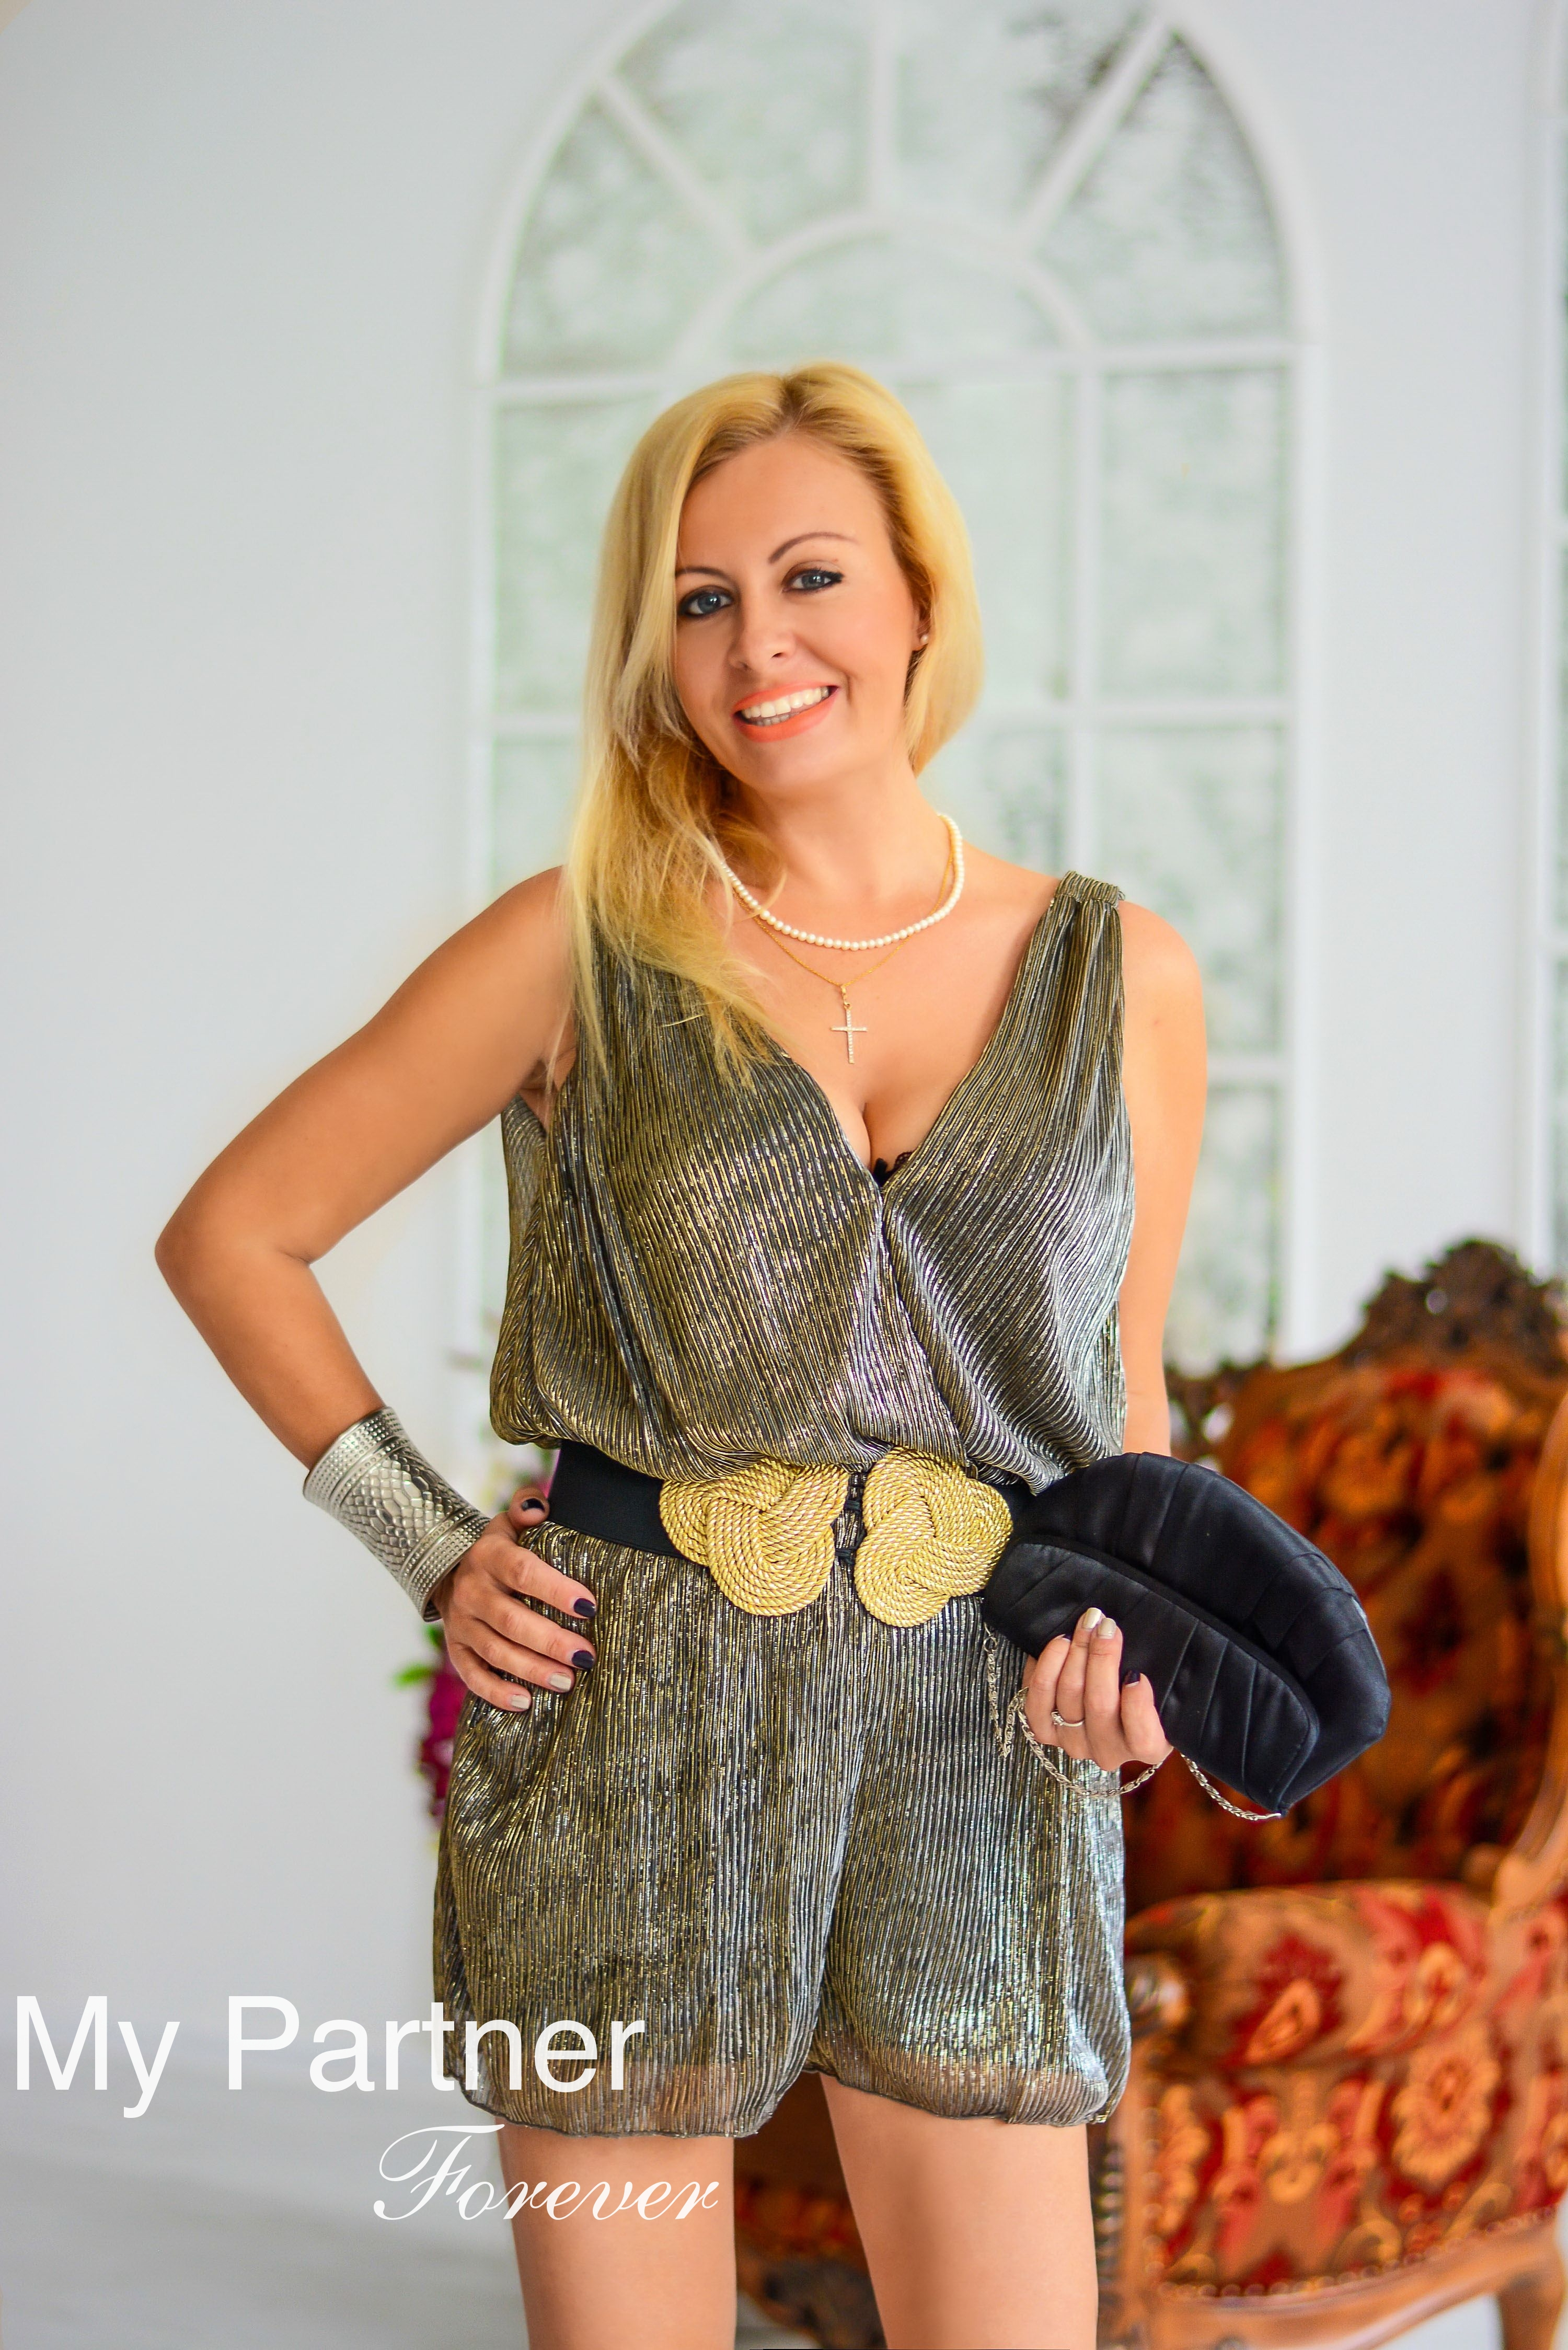 Ukrainian Girl Looking for Marriage - Yana from Kharkov, Ukraine